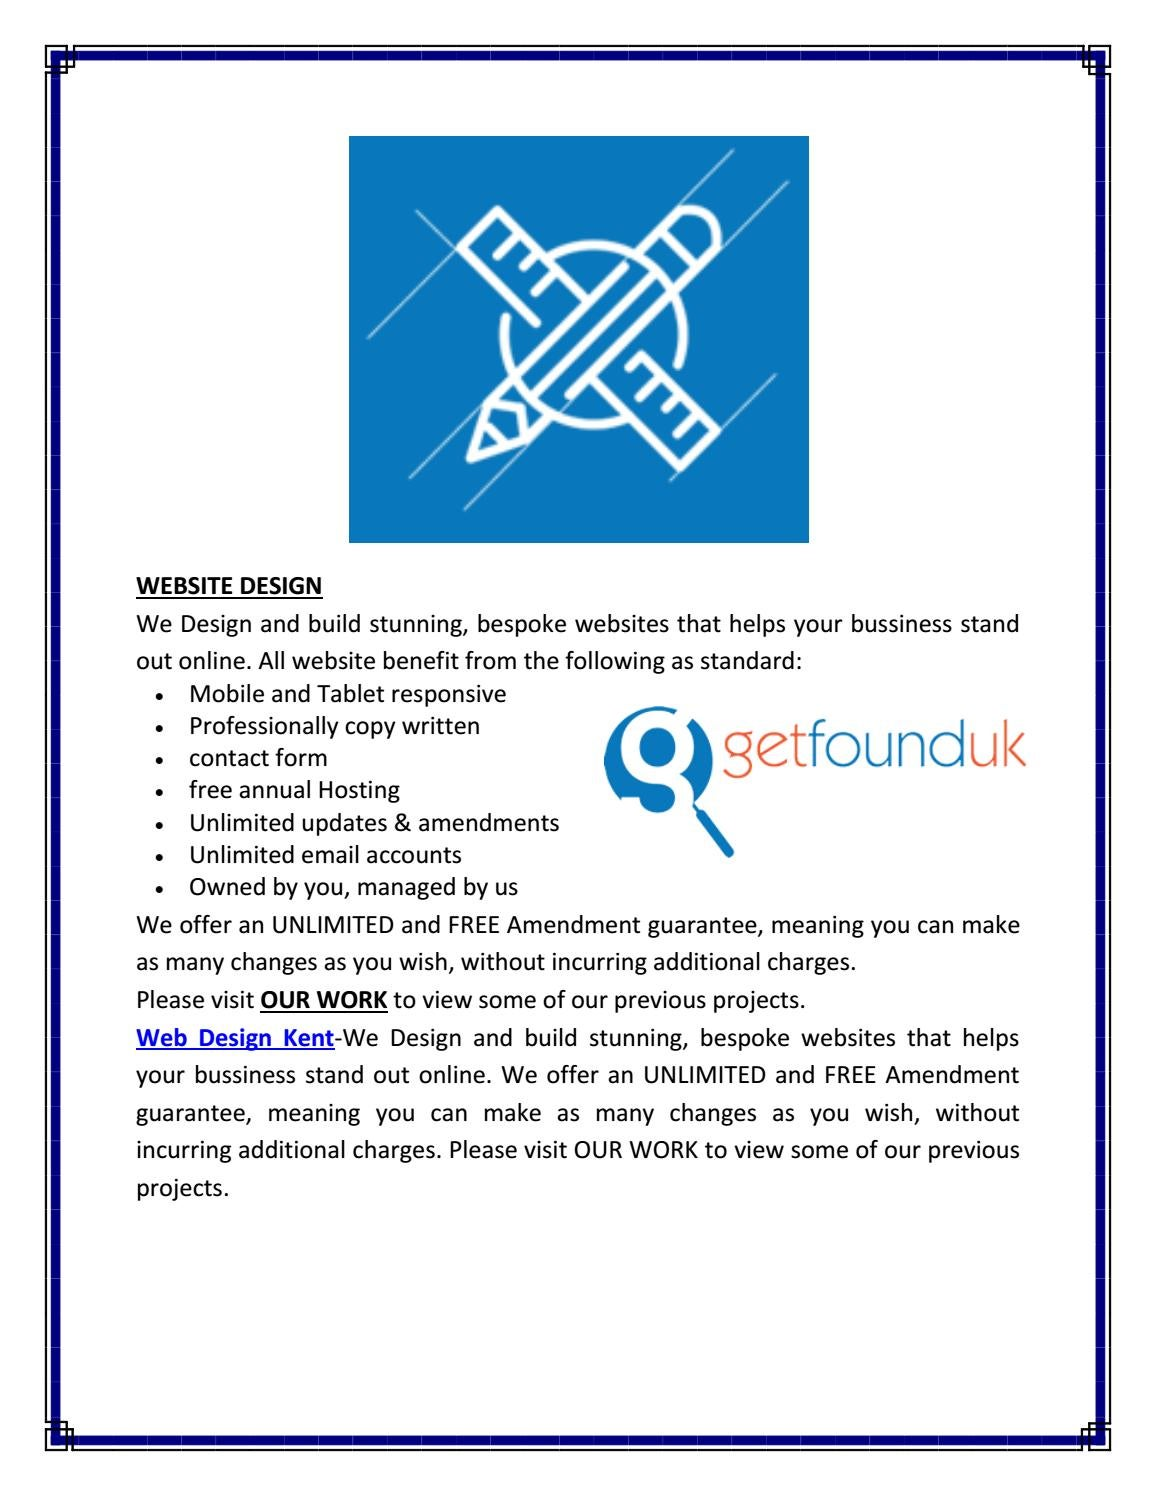 Is Getfounduk Co Uk Best Seo And Web Design Company In Kent By Sinuse Jill Issuu